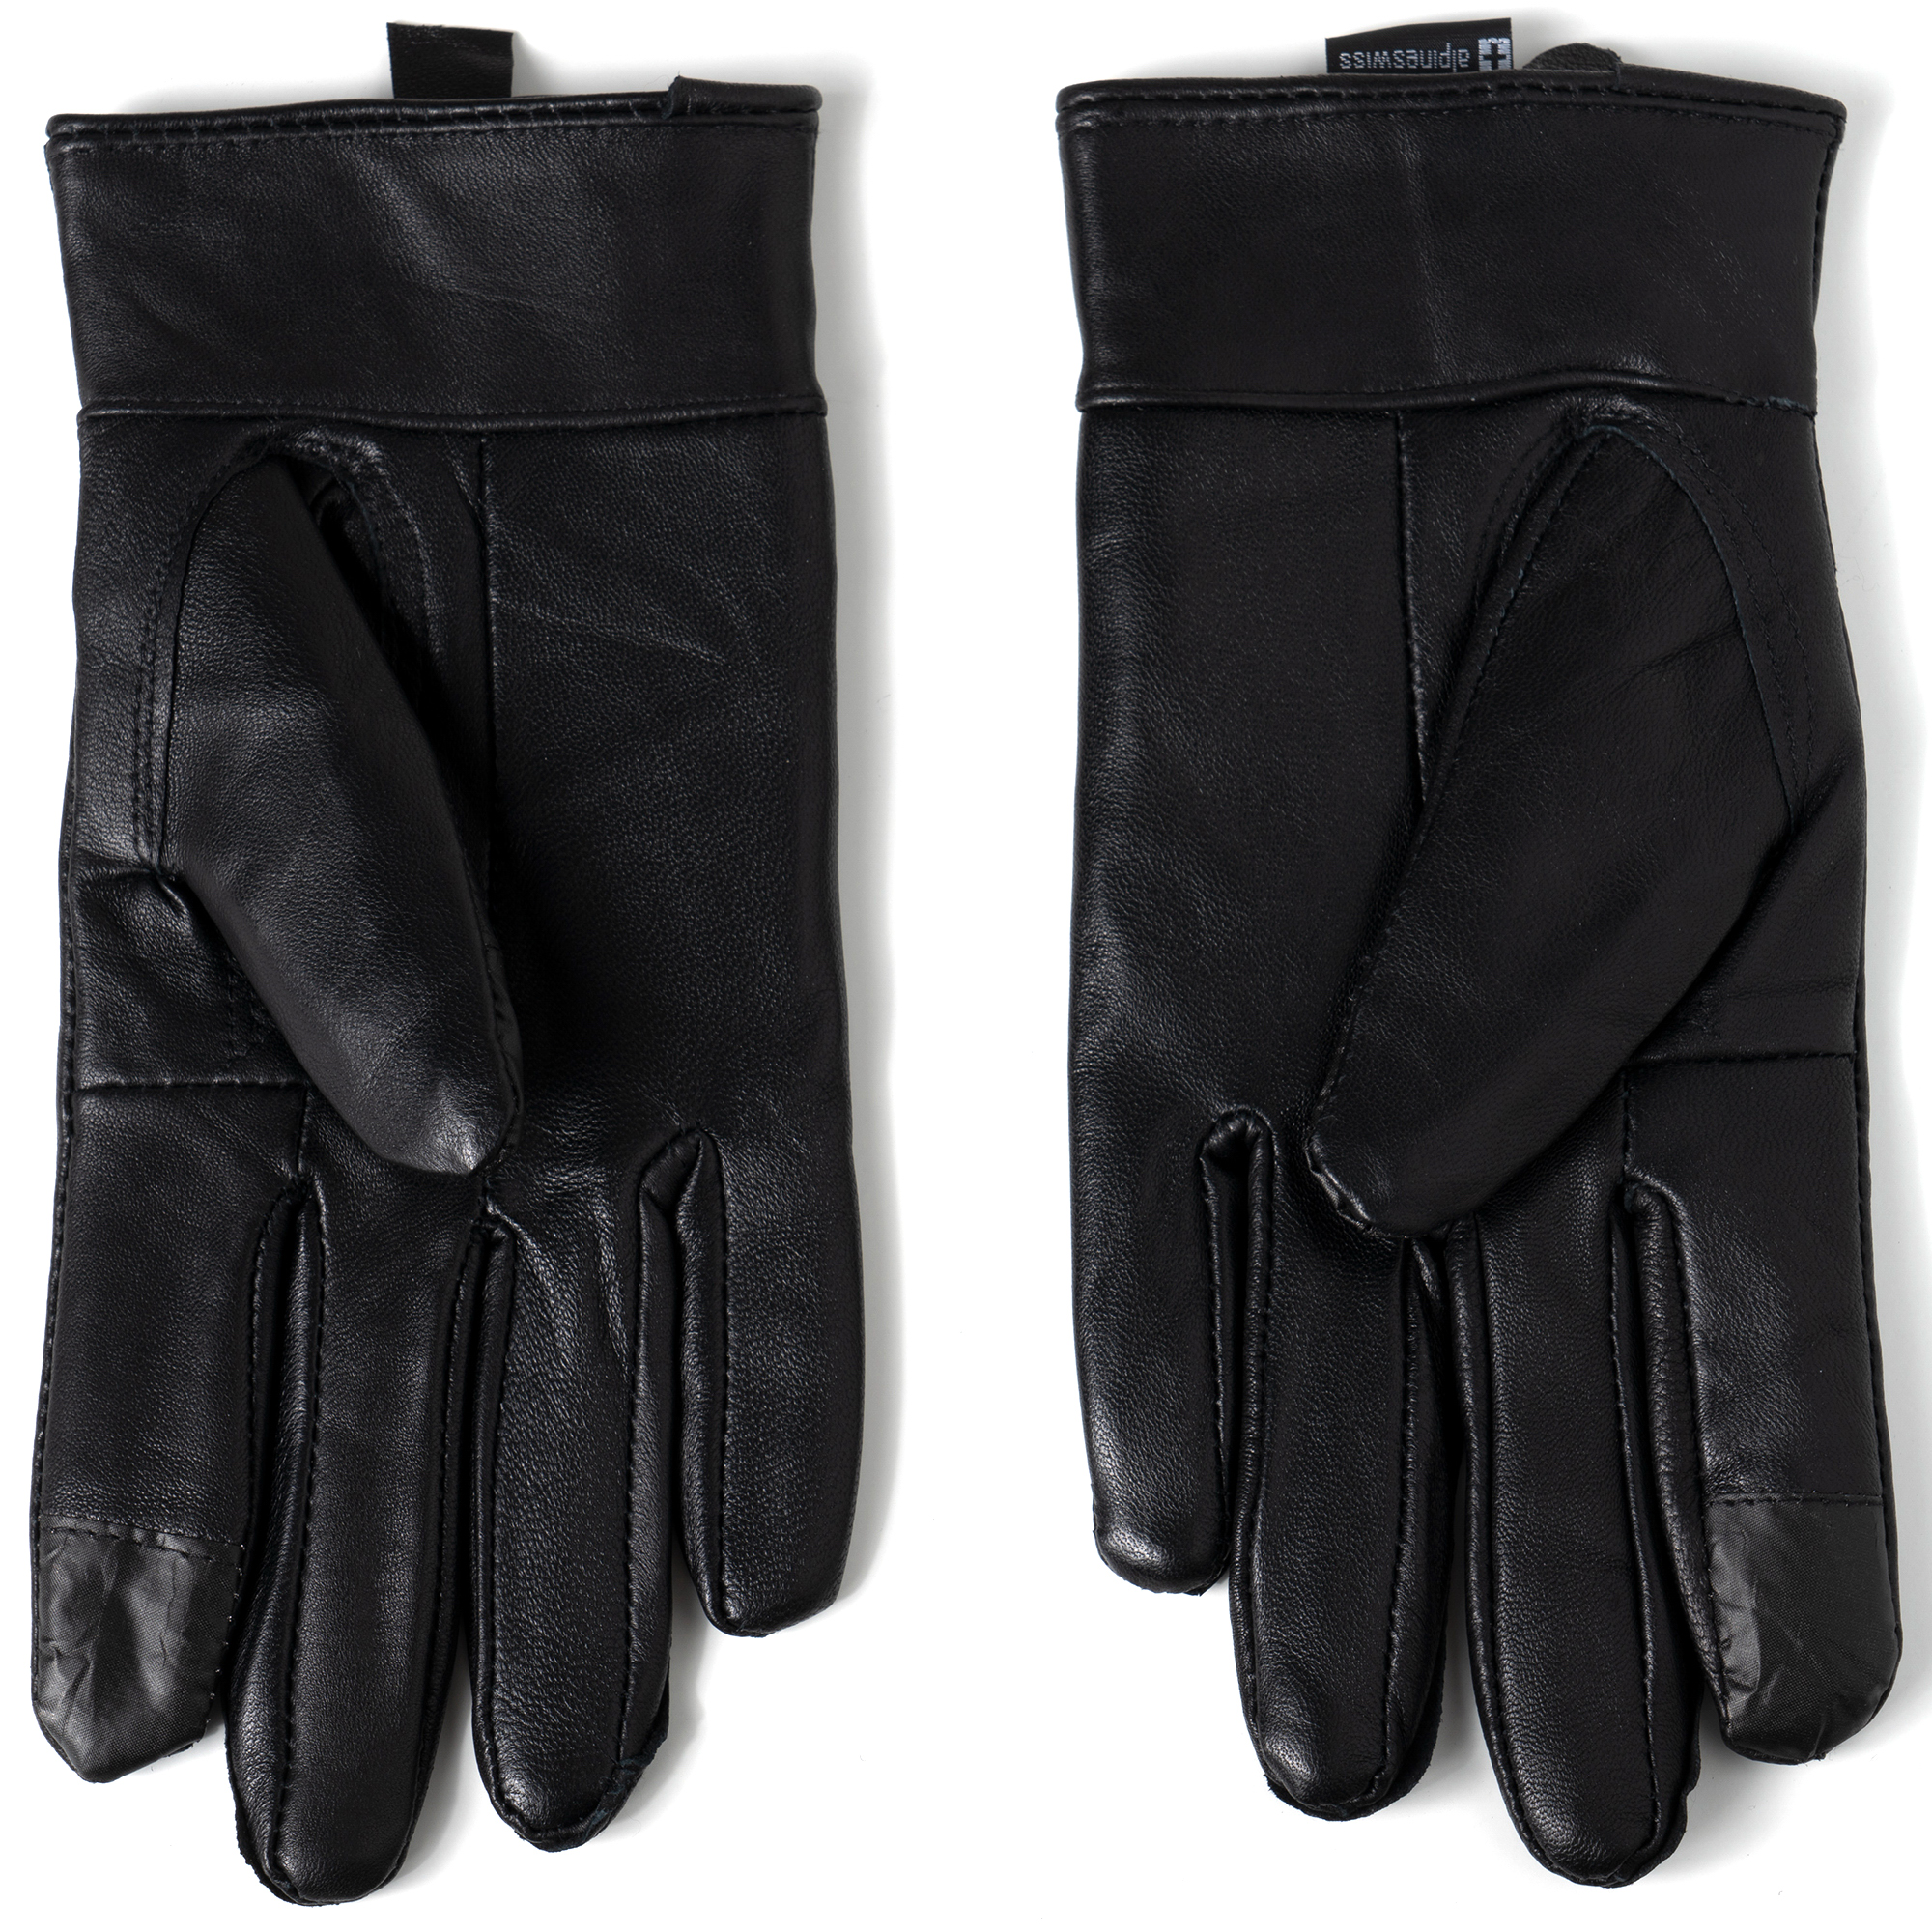 Alpine-Swiss-Womens-Touch-Screen-Gloves-Leather-Phone-Texting-Glove-Thermal-Warm thumbnail 20